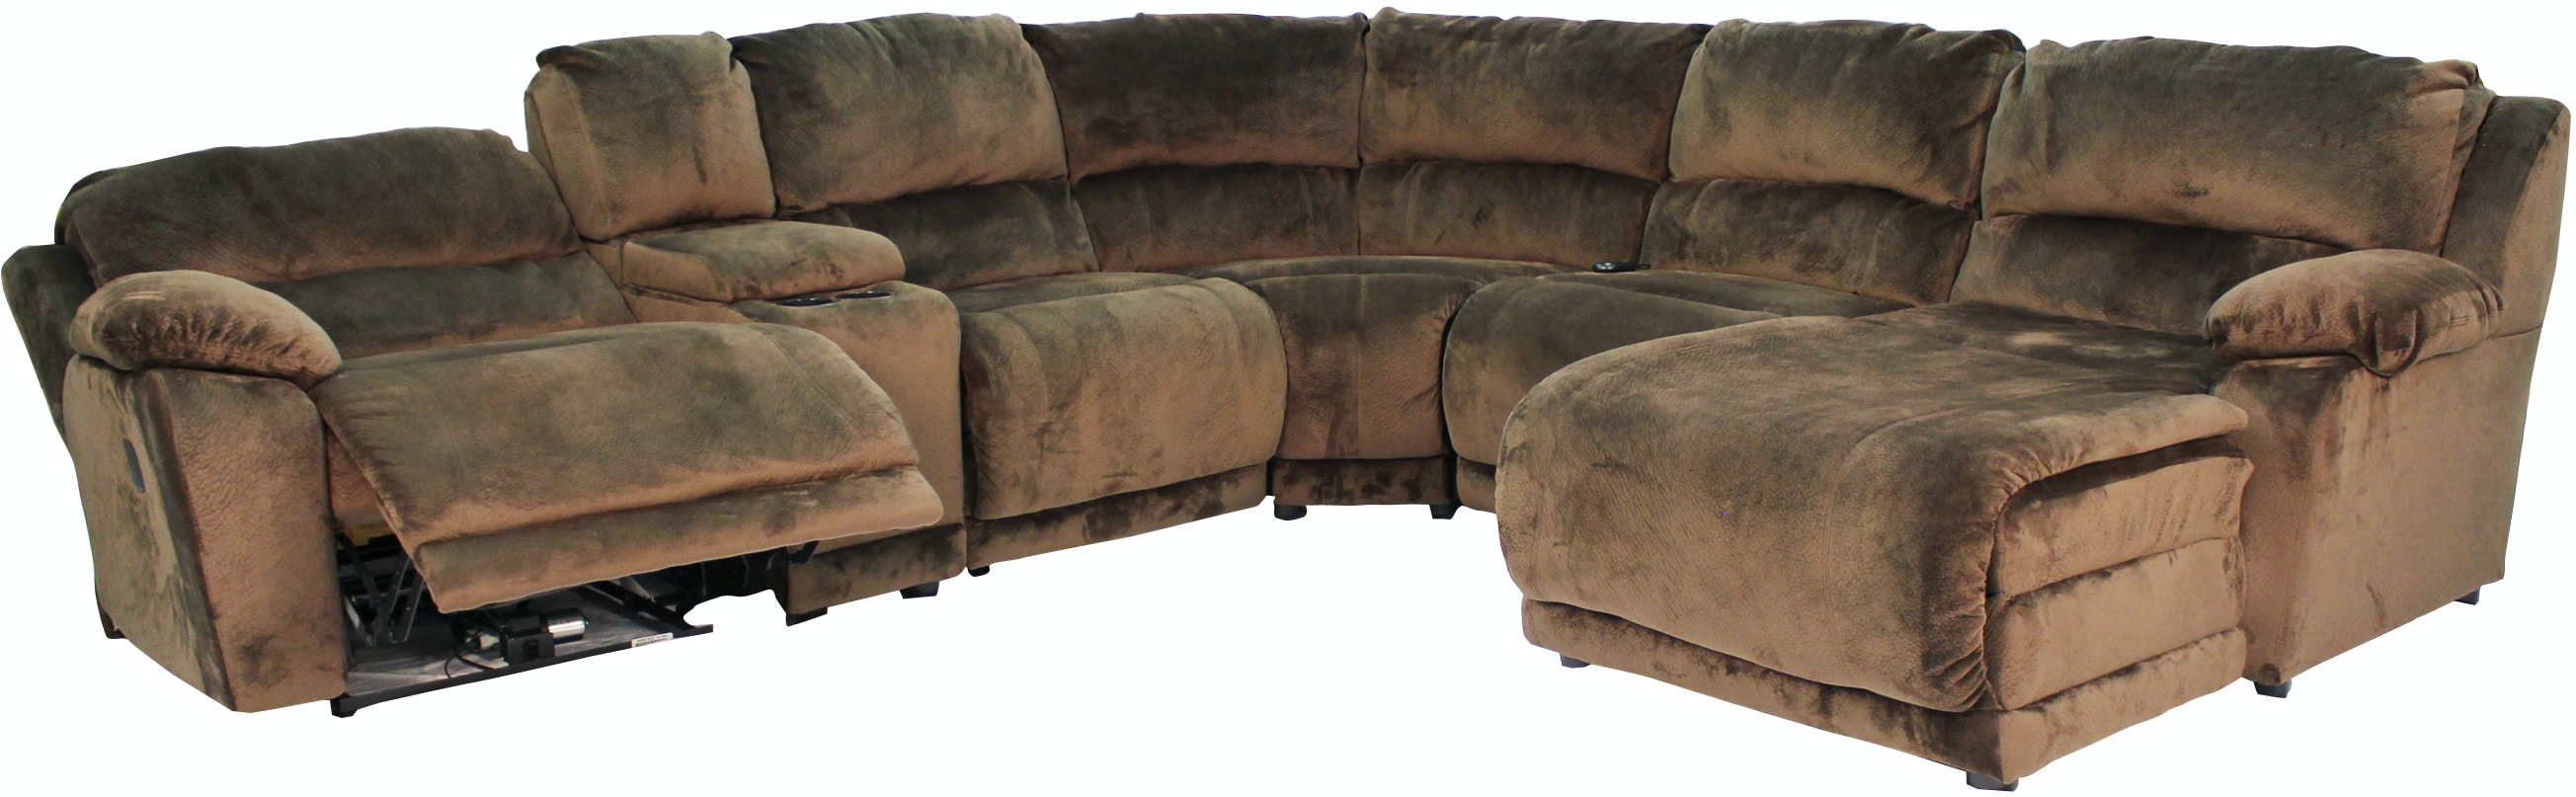 Klaussner Living Room Charmed 6 Piece Reclining Sectional G